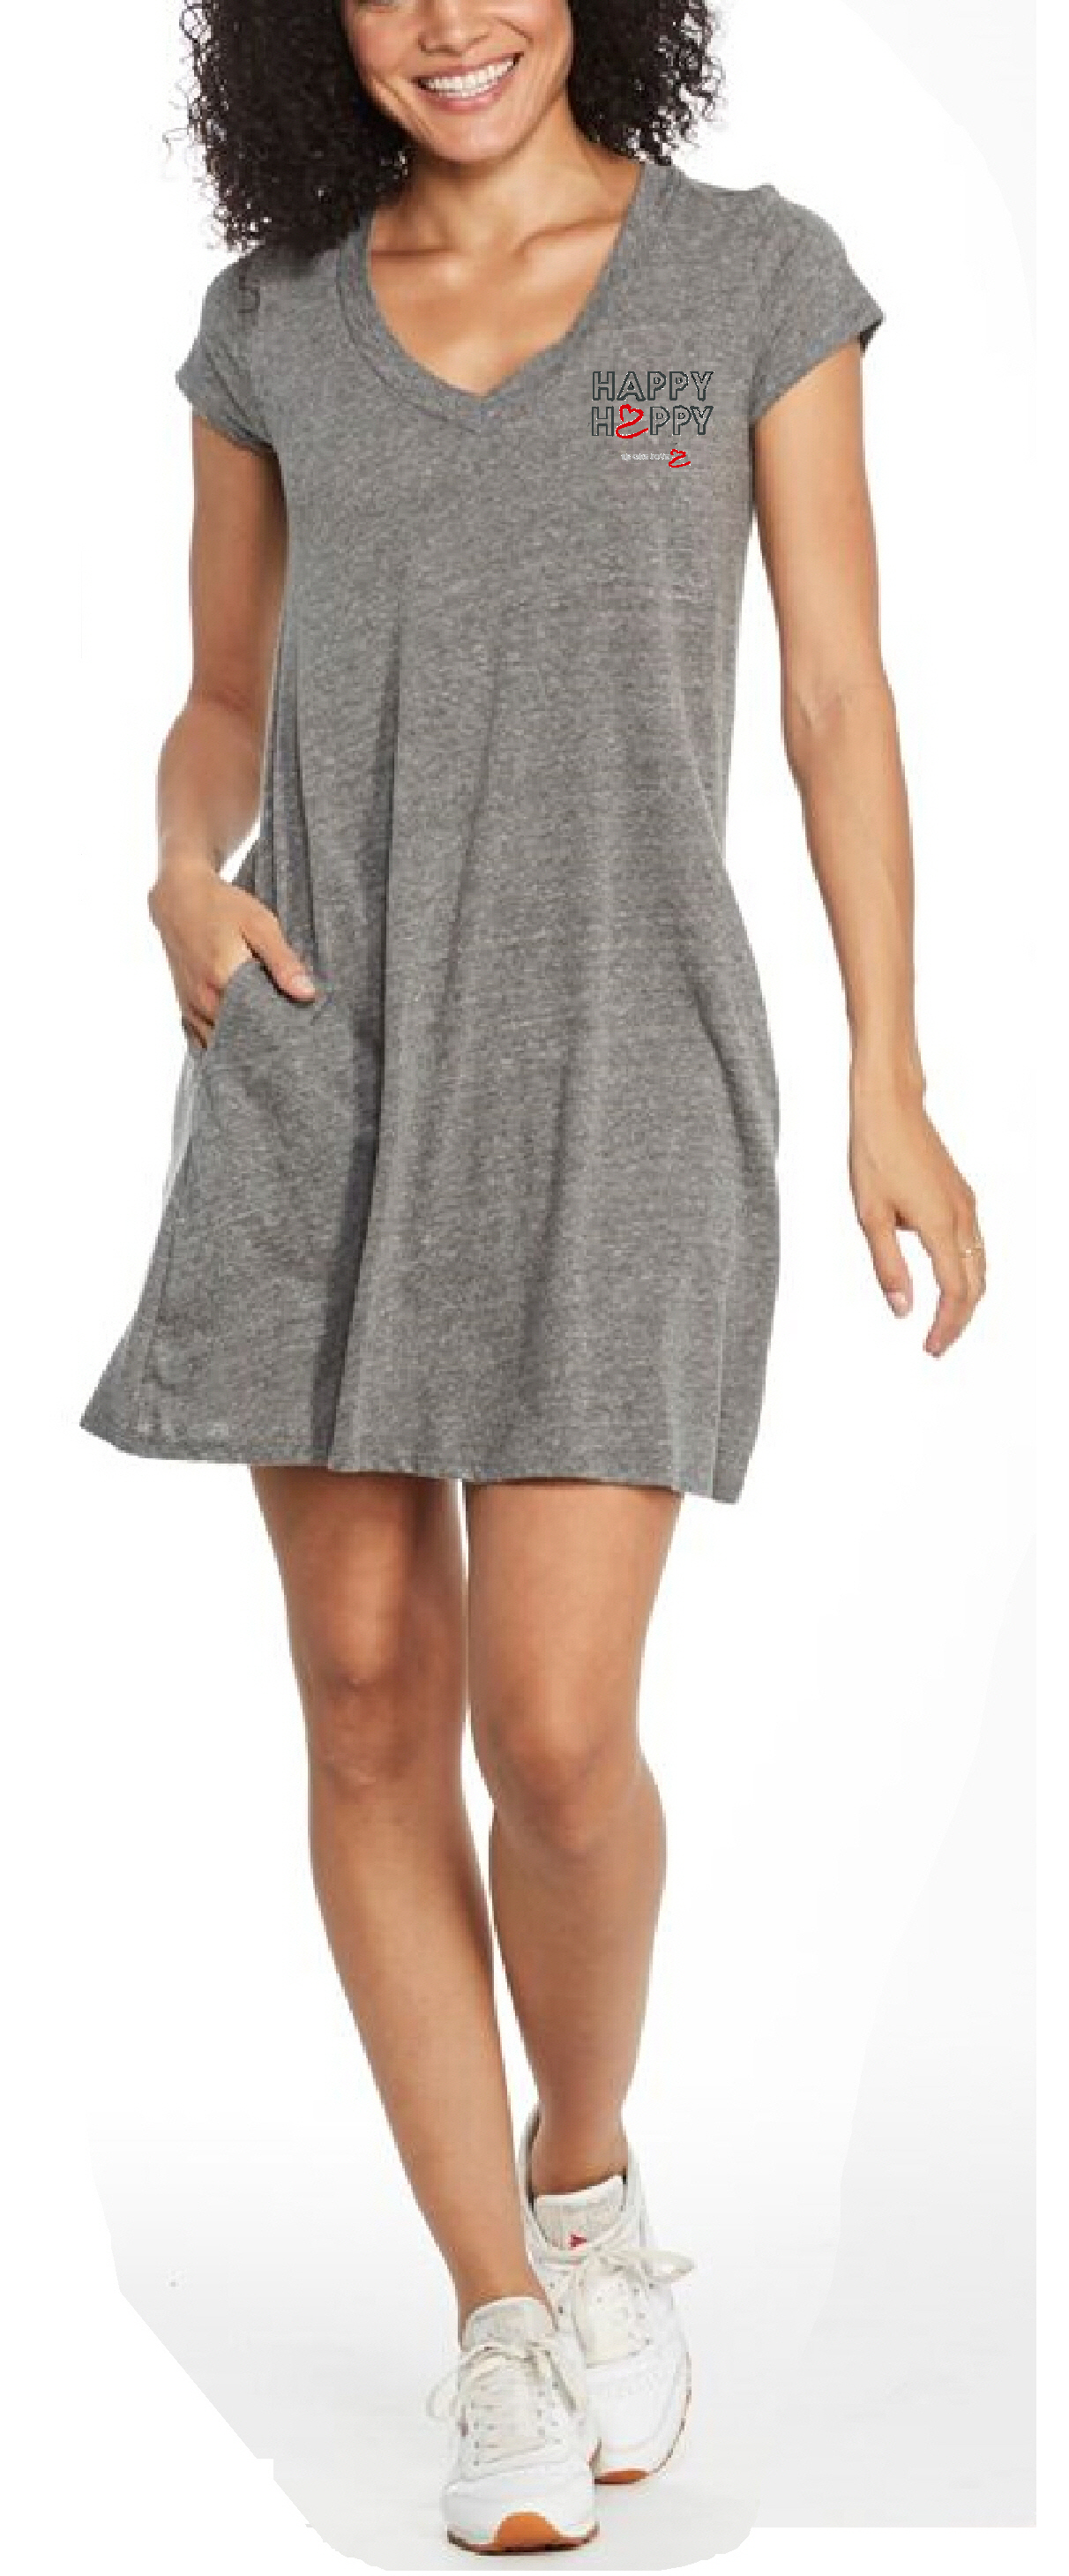 HappyHappyTee Shirt Dress.jpg